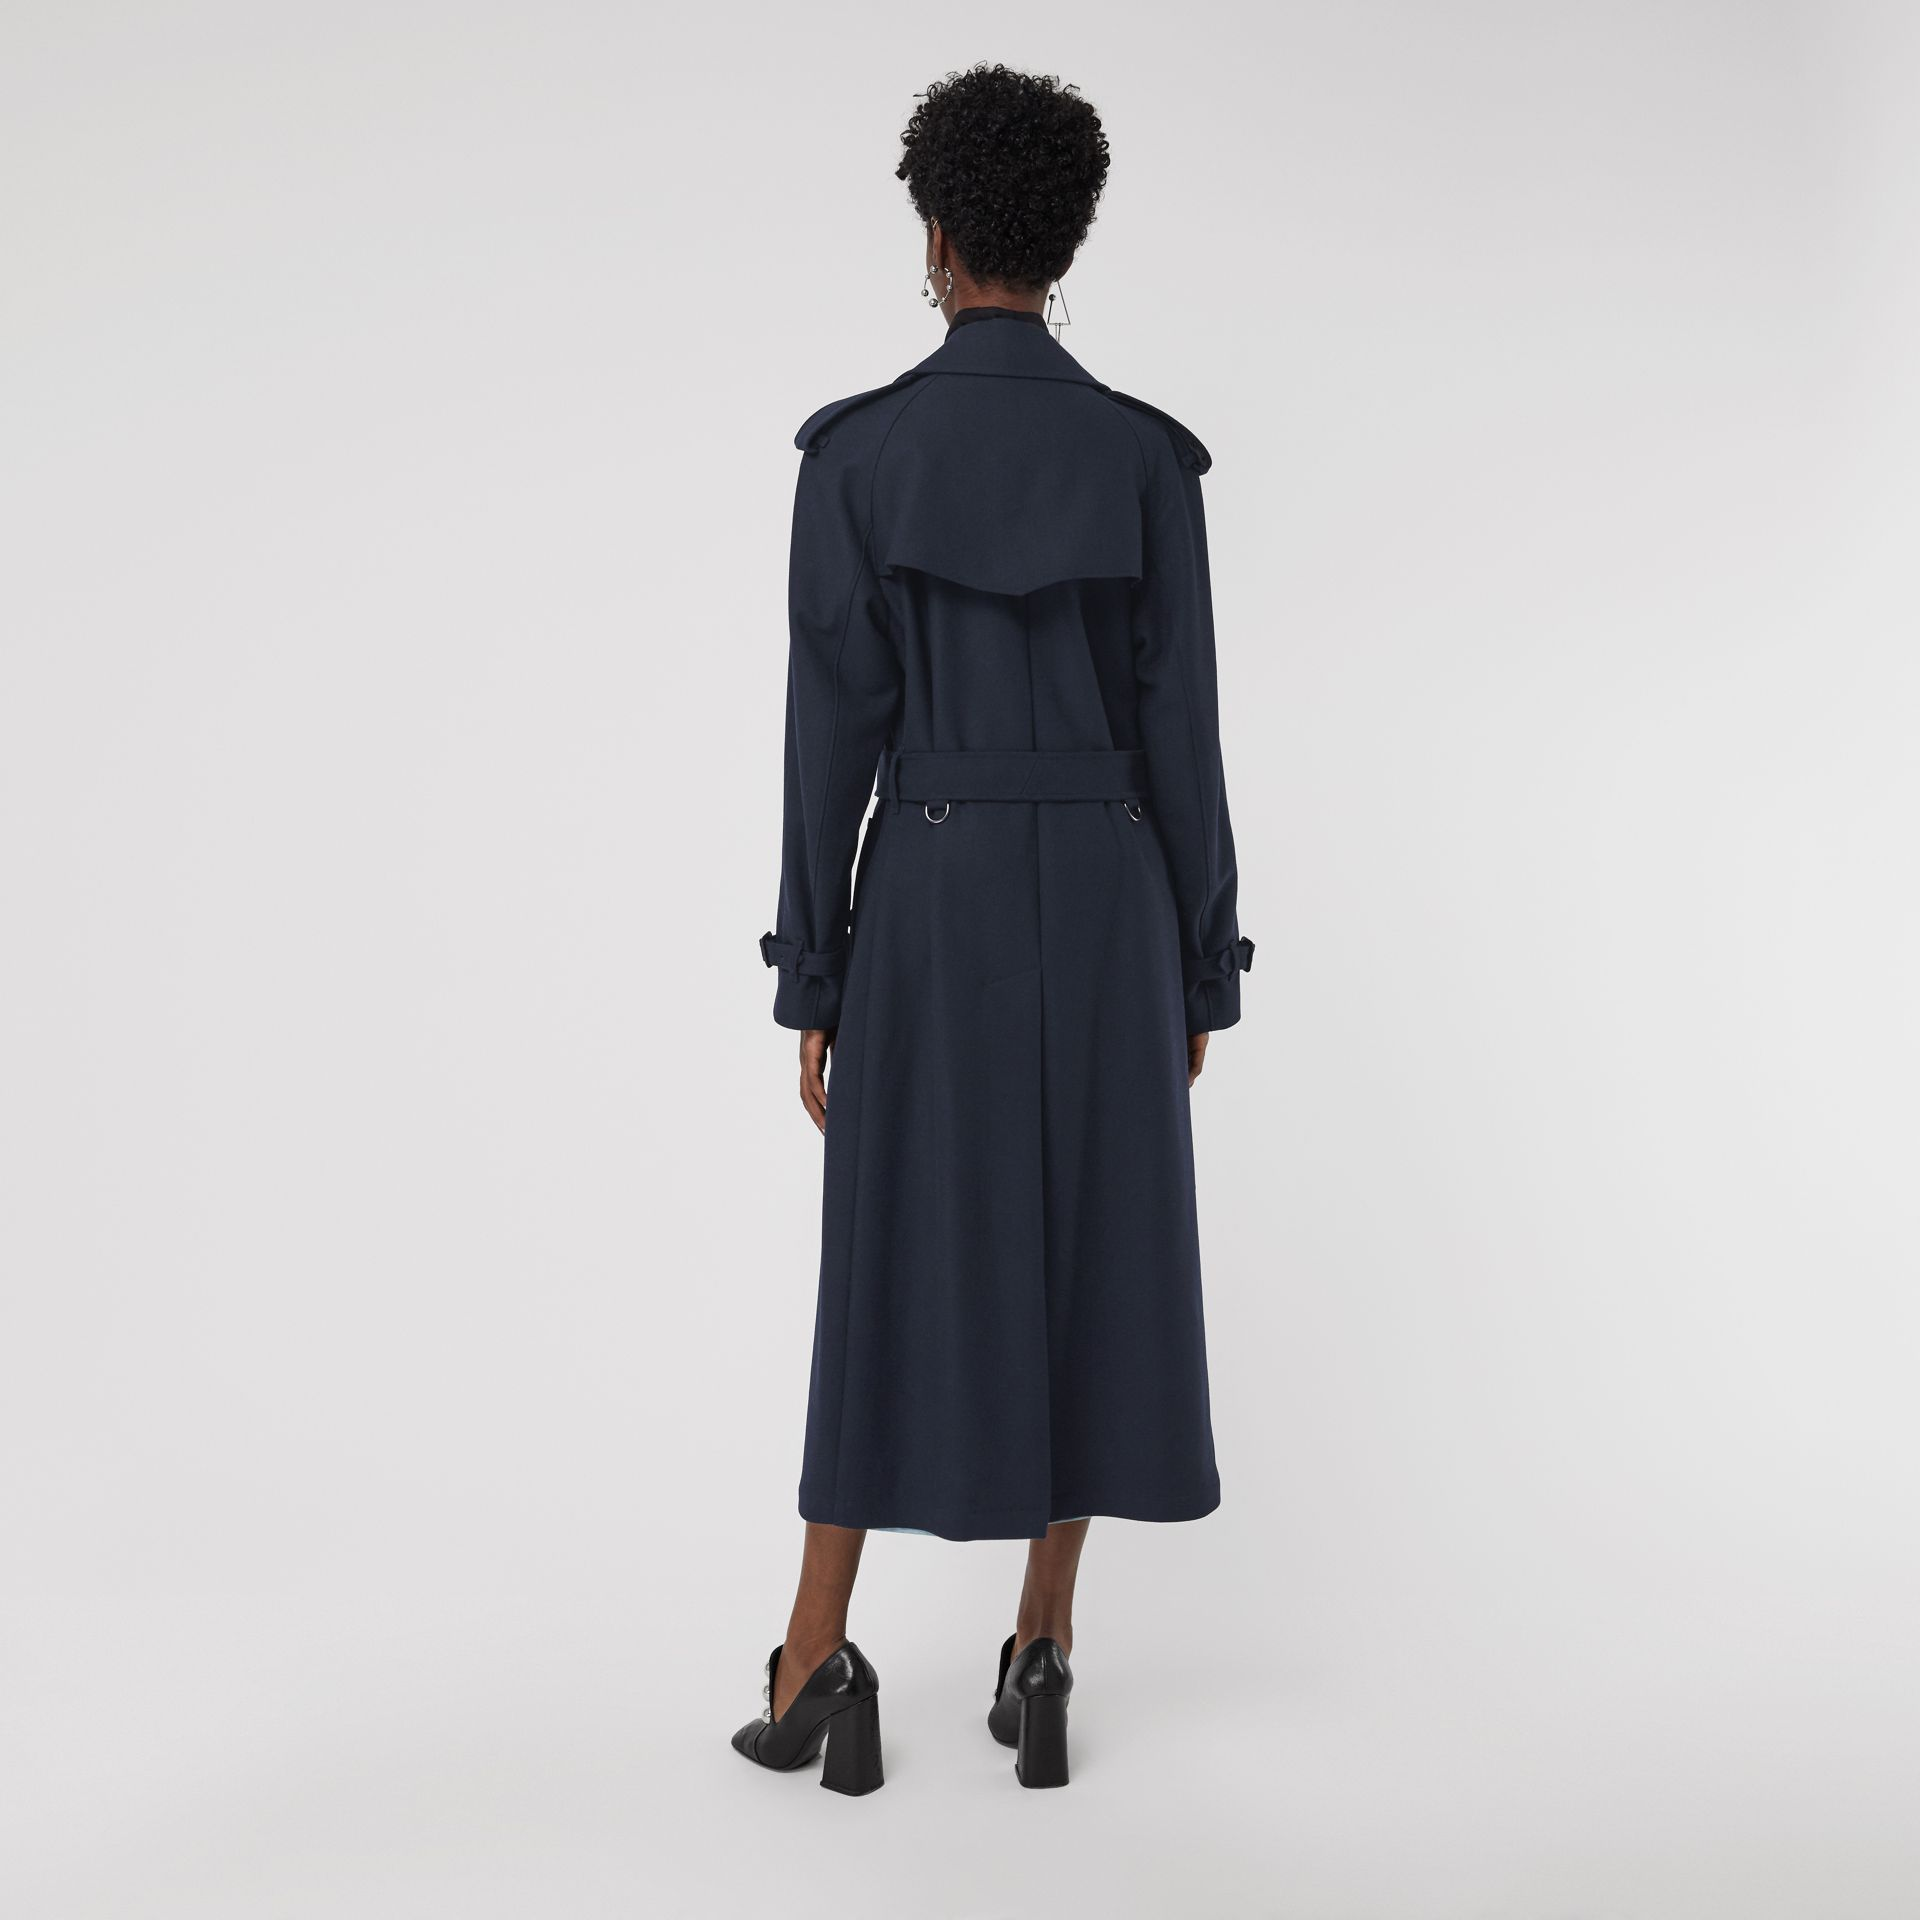 Herringbone Wool Blend Trench Coat in Navy - Women | Burberry - gallery image 2